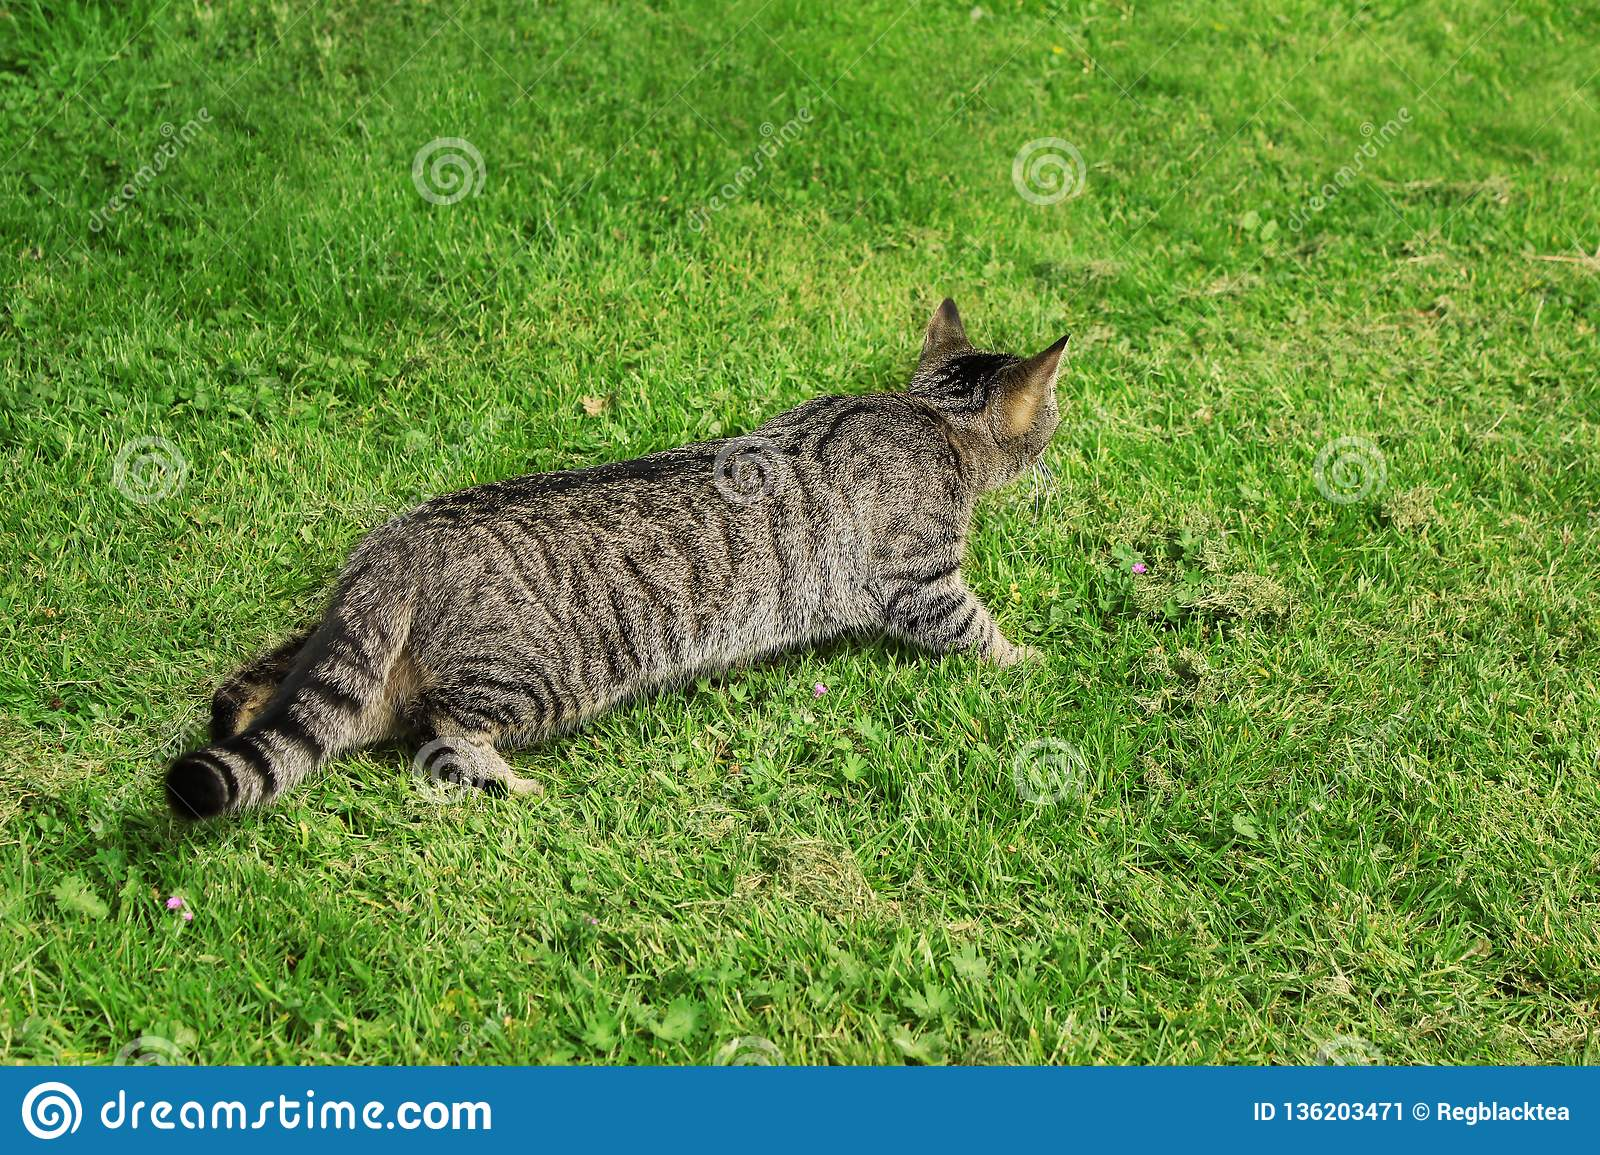 Cat hunting. Tabby cat outdoor on green grass.